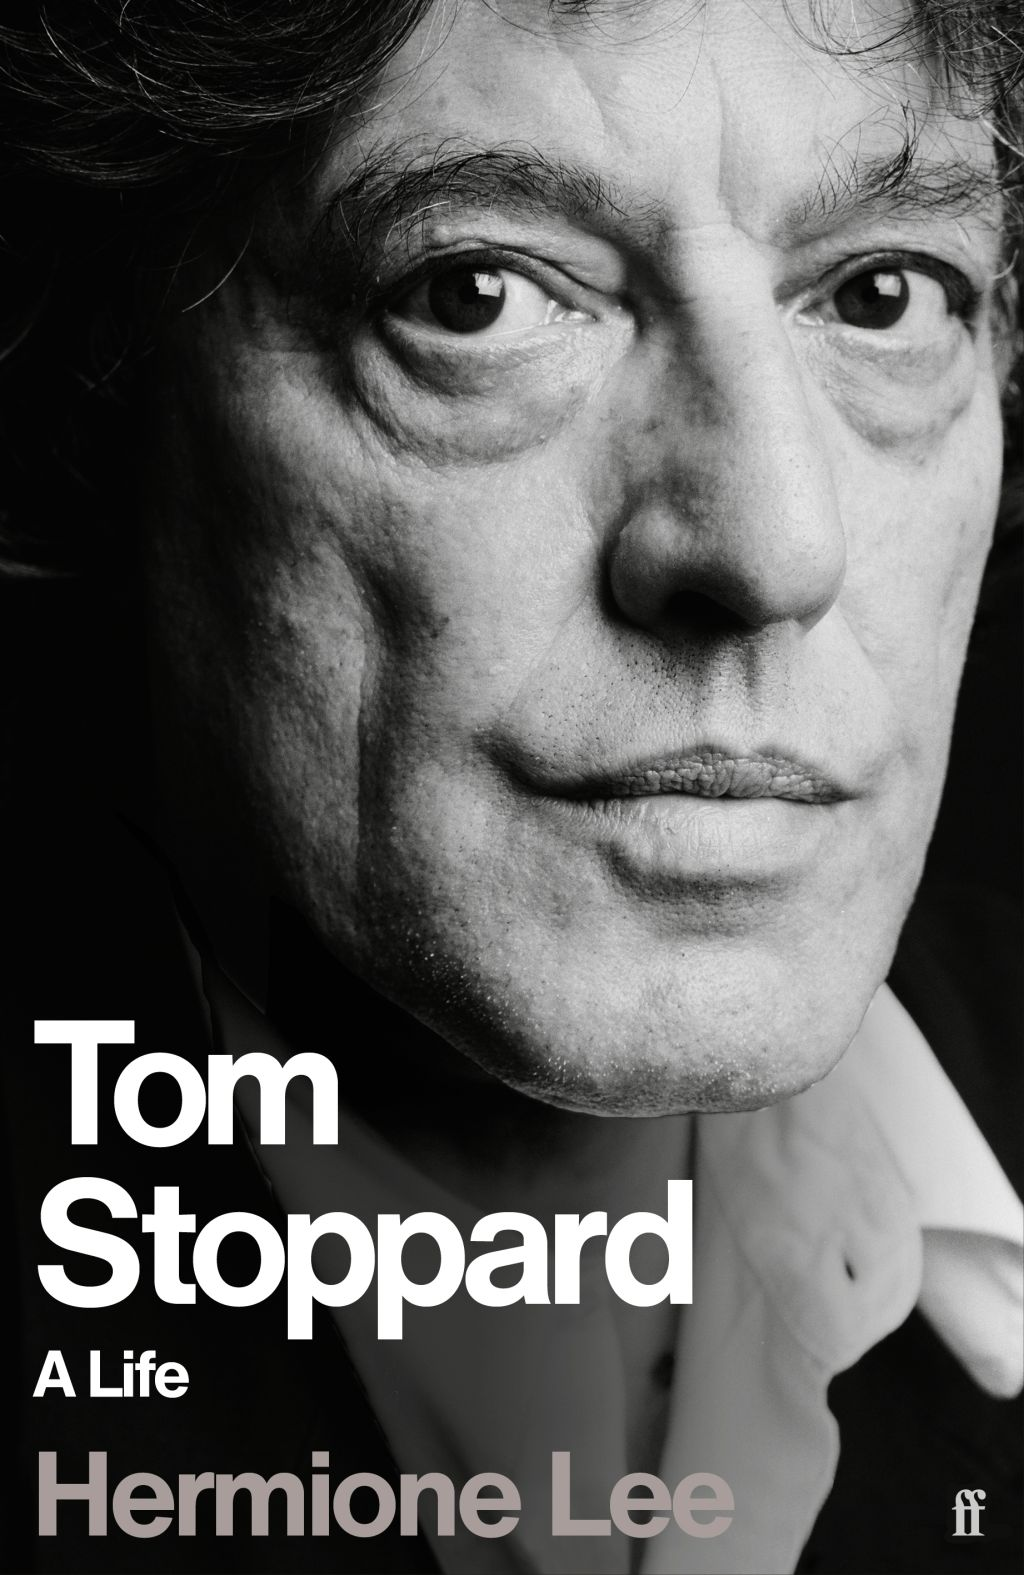 Tom Stoppard, A Life dust jacket